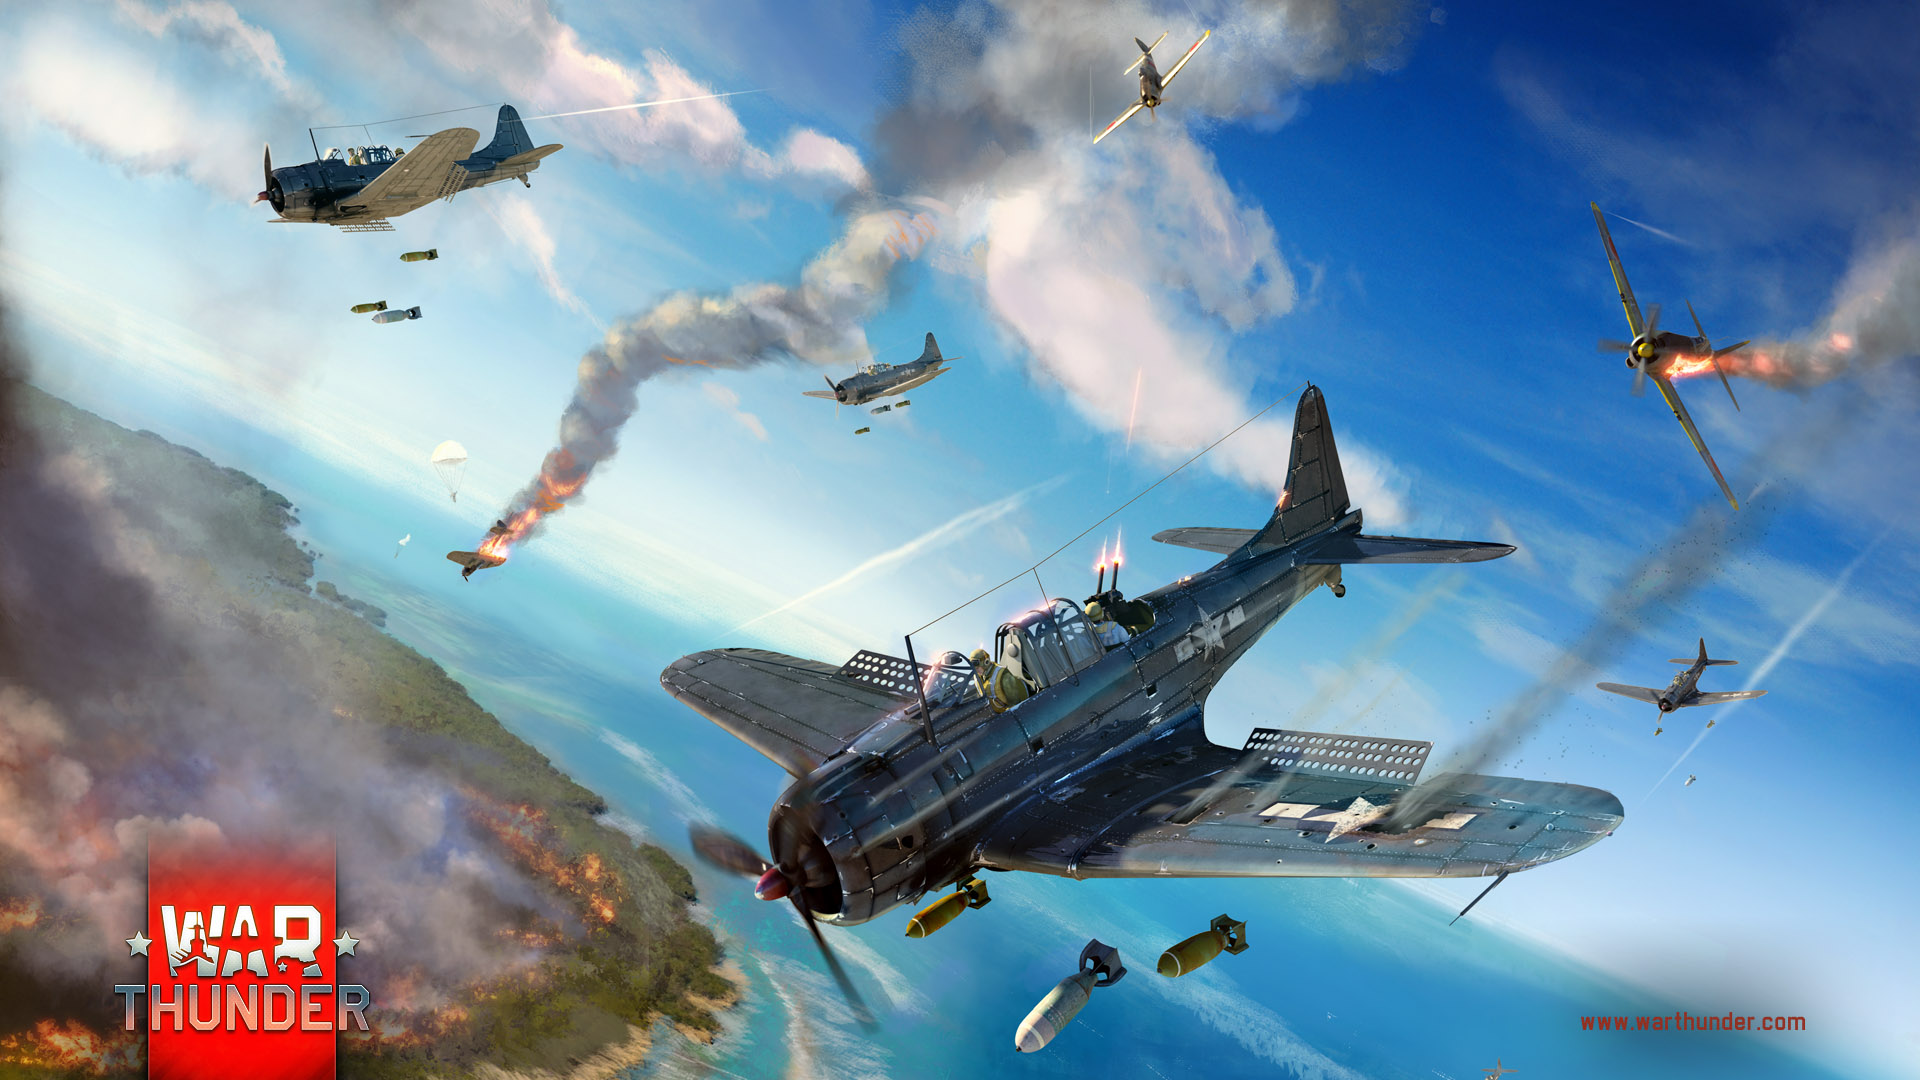 Profile] SBD 3 Dauntless   Slow But Deadly   News   War Thunder 1920x1080